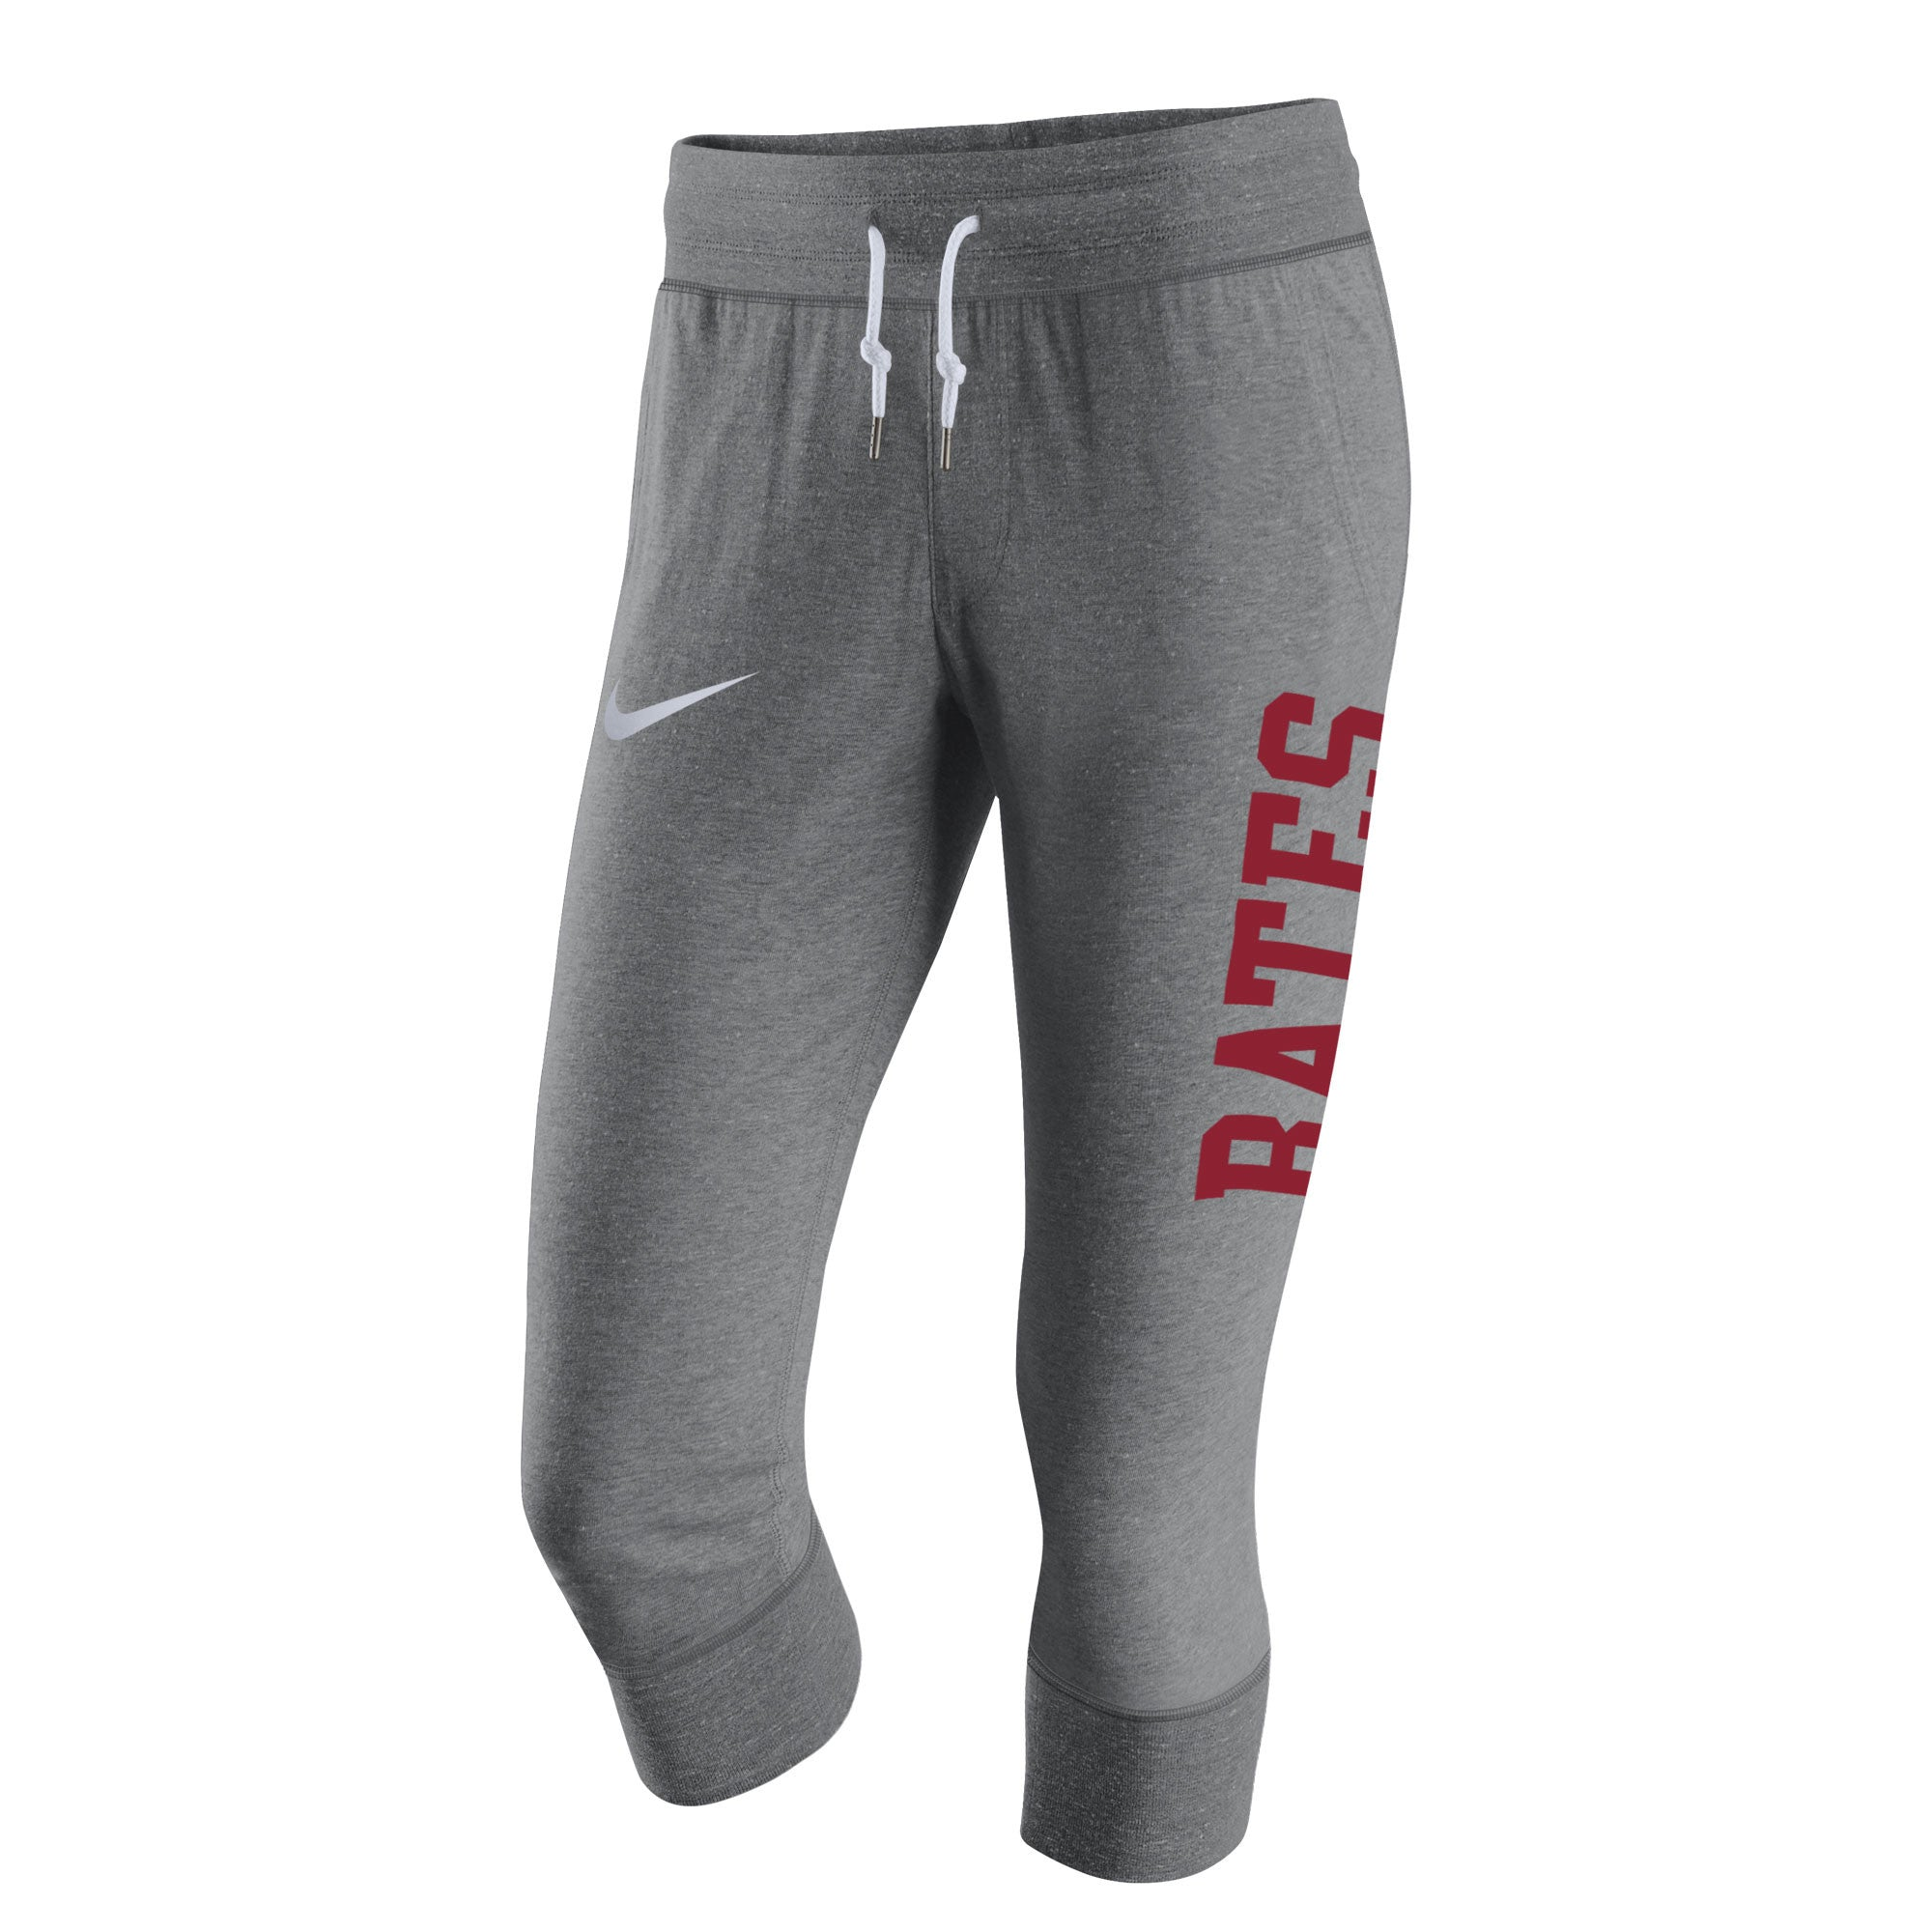 Women's Nike Gym Vintage Capri Pants - Women's, Women's Bottoms